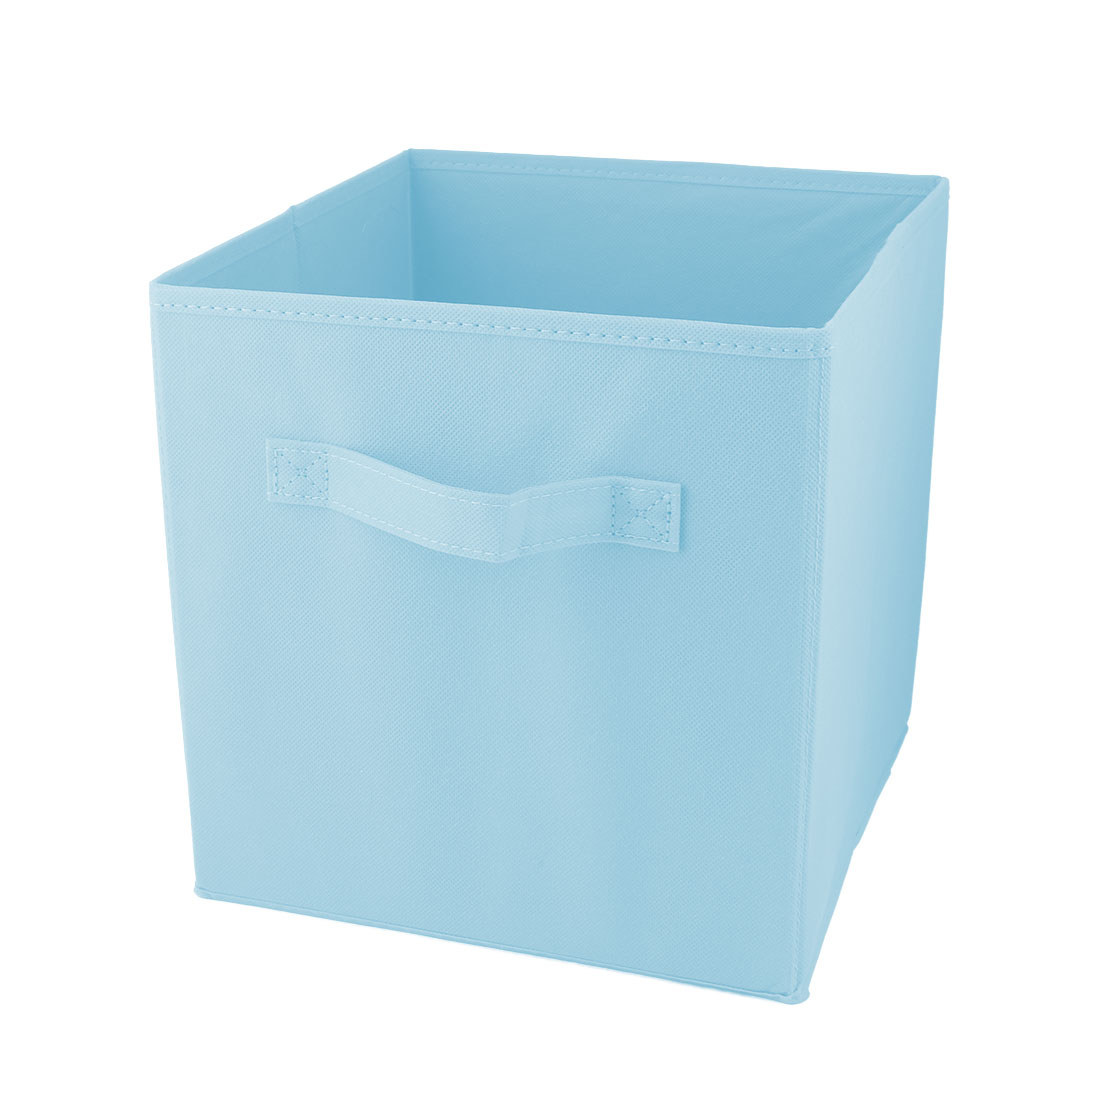 Apartment Non-woven Fabric Foldable Books Cosmetics Holder Storage Box Sky Blue - image 5 of 5